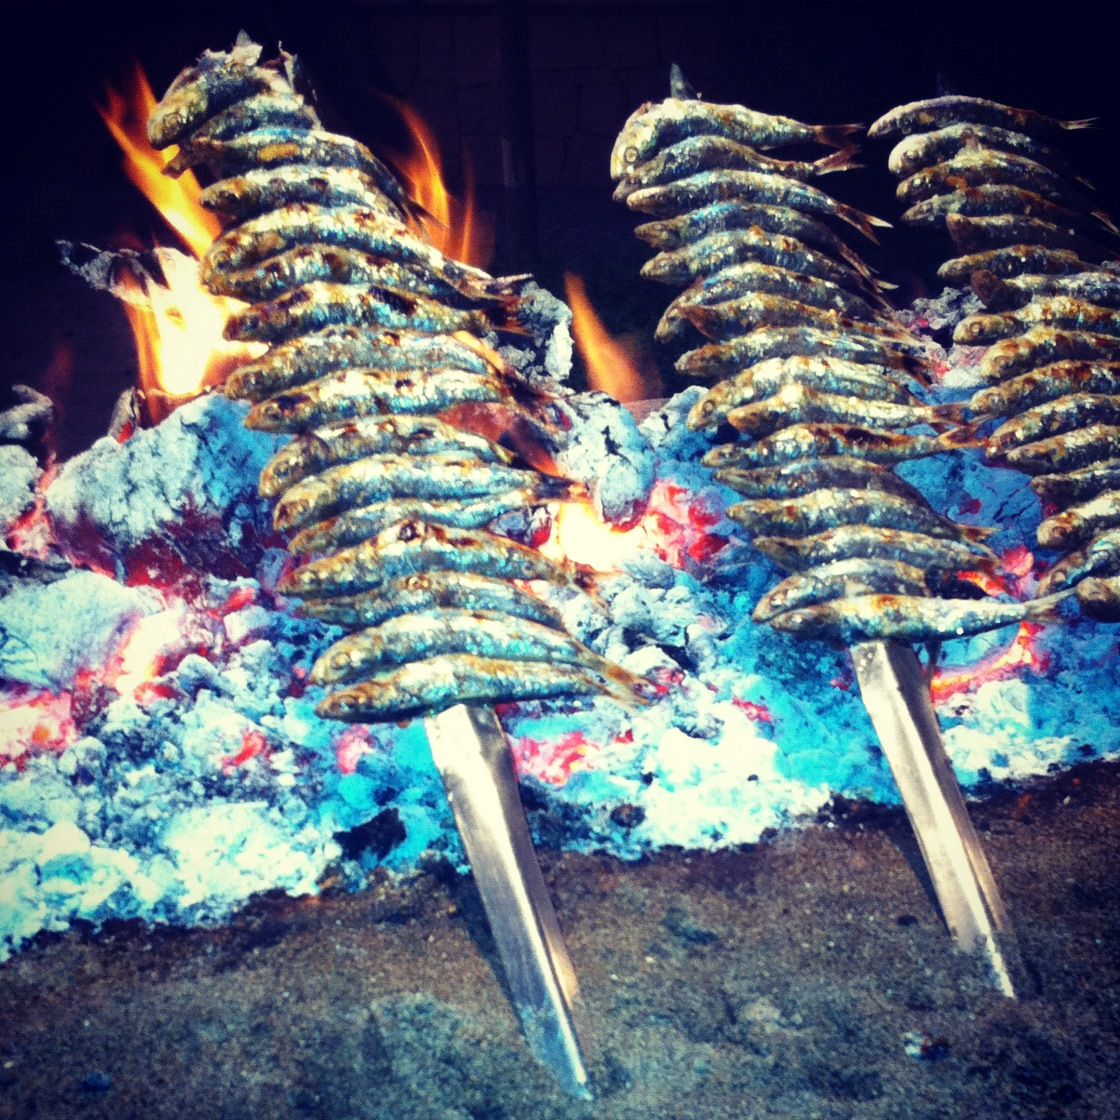 Espetos - sardine skewers andalucia andrew forbes